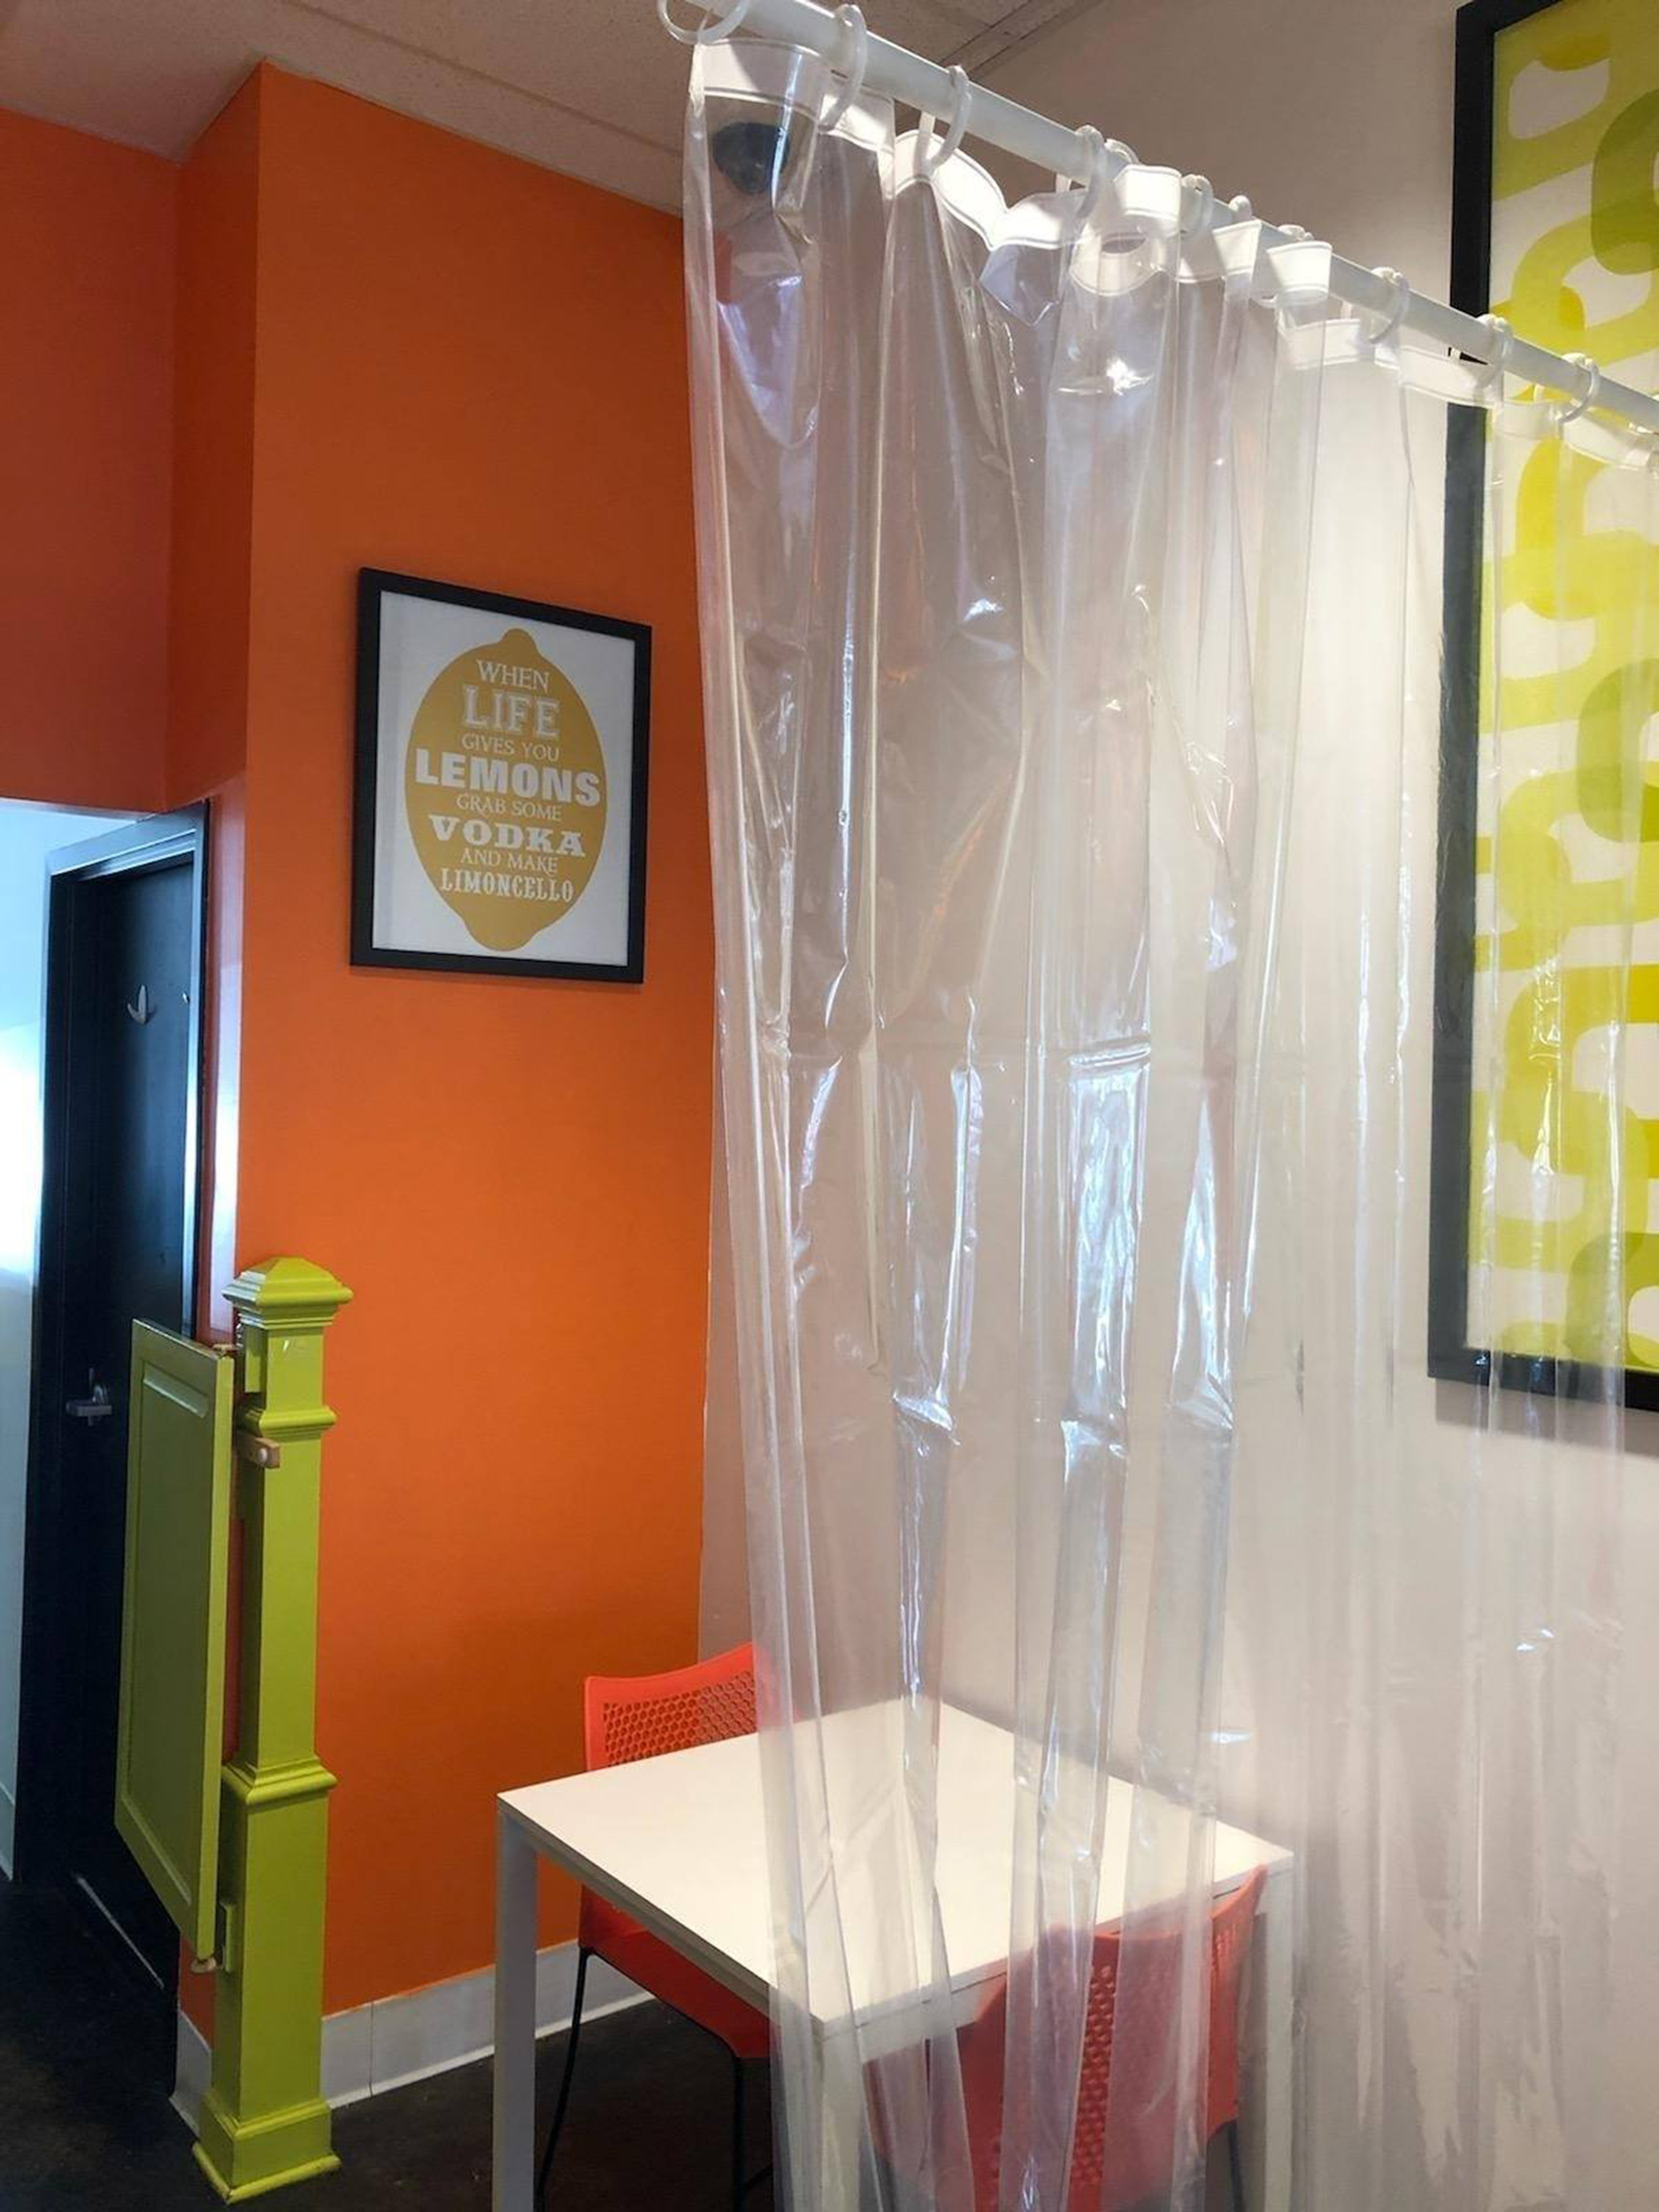 Ohio Restaurant Installs Shower Curtains Between Tables To Encourage Social Distancing